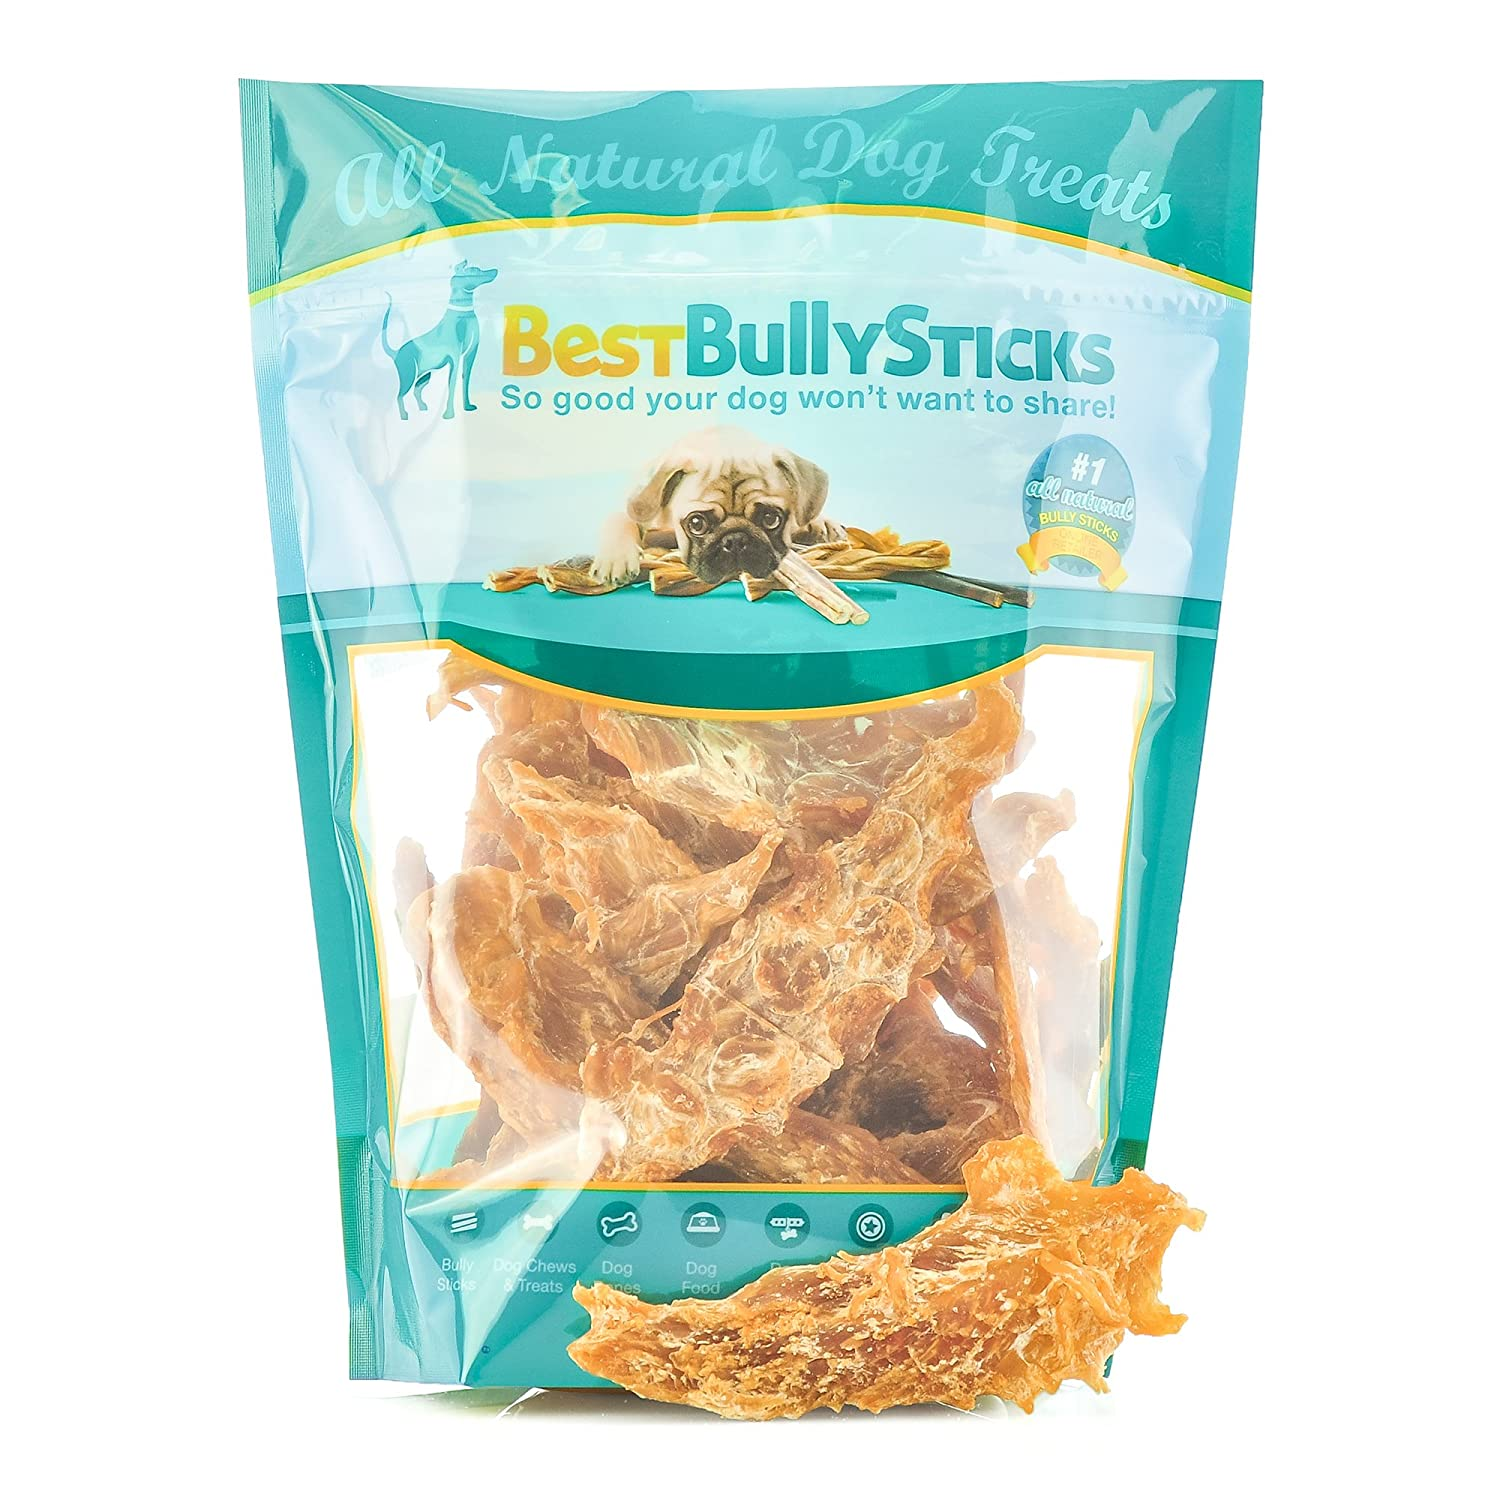 Best Bully Sticks Premium Slow-Cooked Whole Muscle Chicken Jerky Dog Treats, 8oz. Bag 81OTag7zJKL